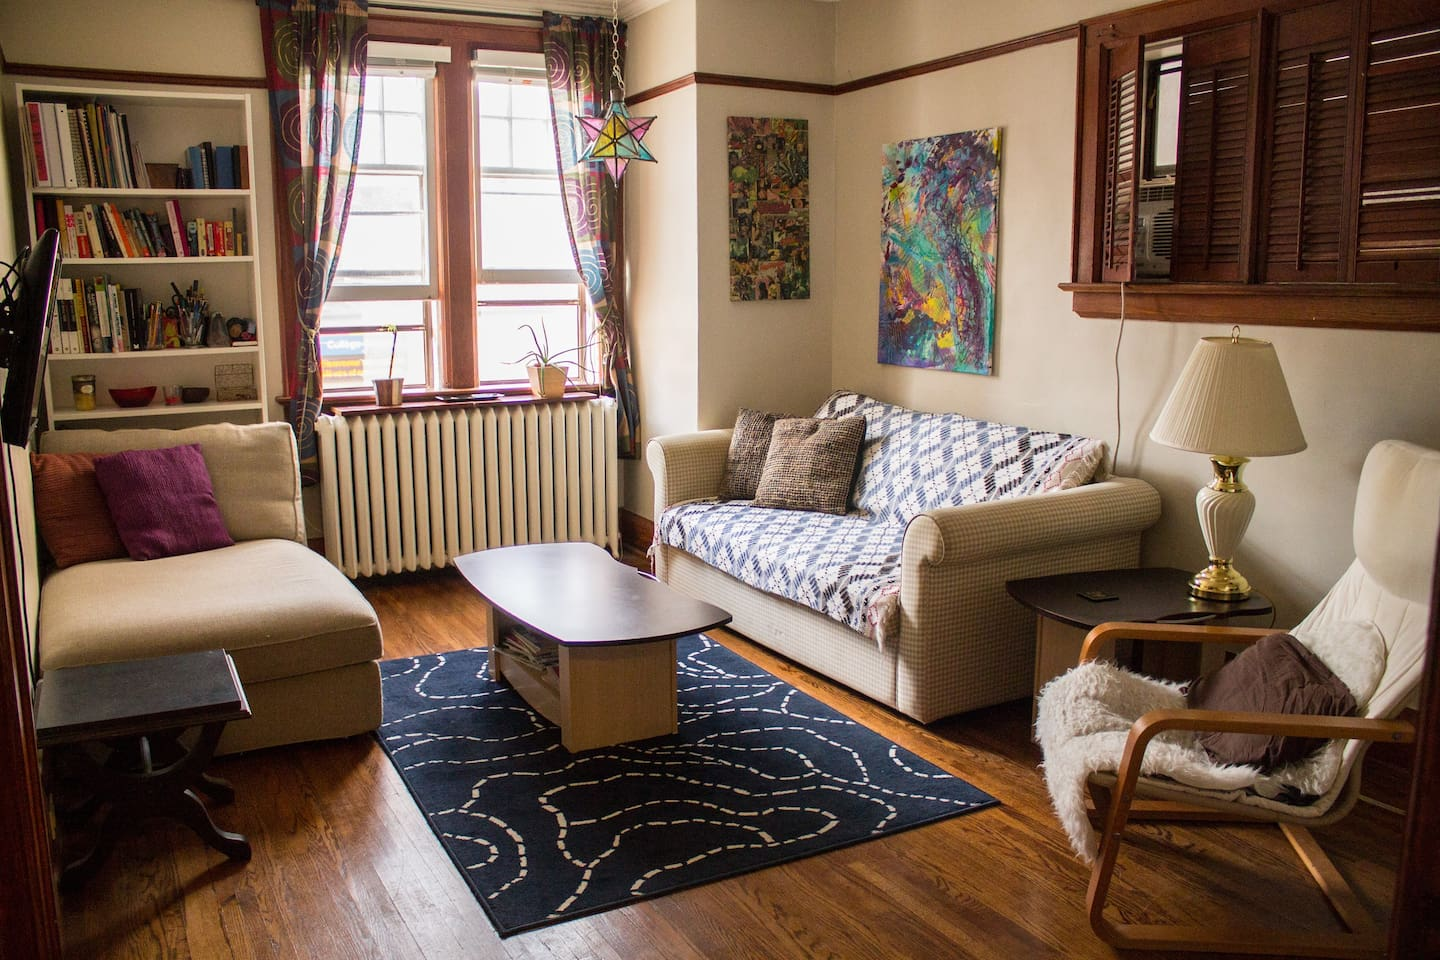 Cozy Artsy Downtown Nest - Apartments for Rent in Toronto, Ontario ...